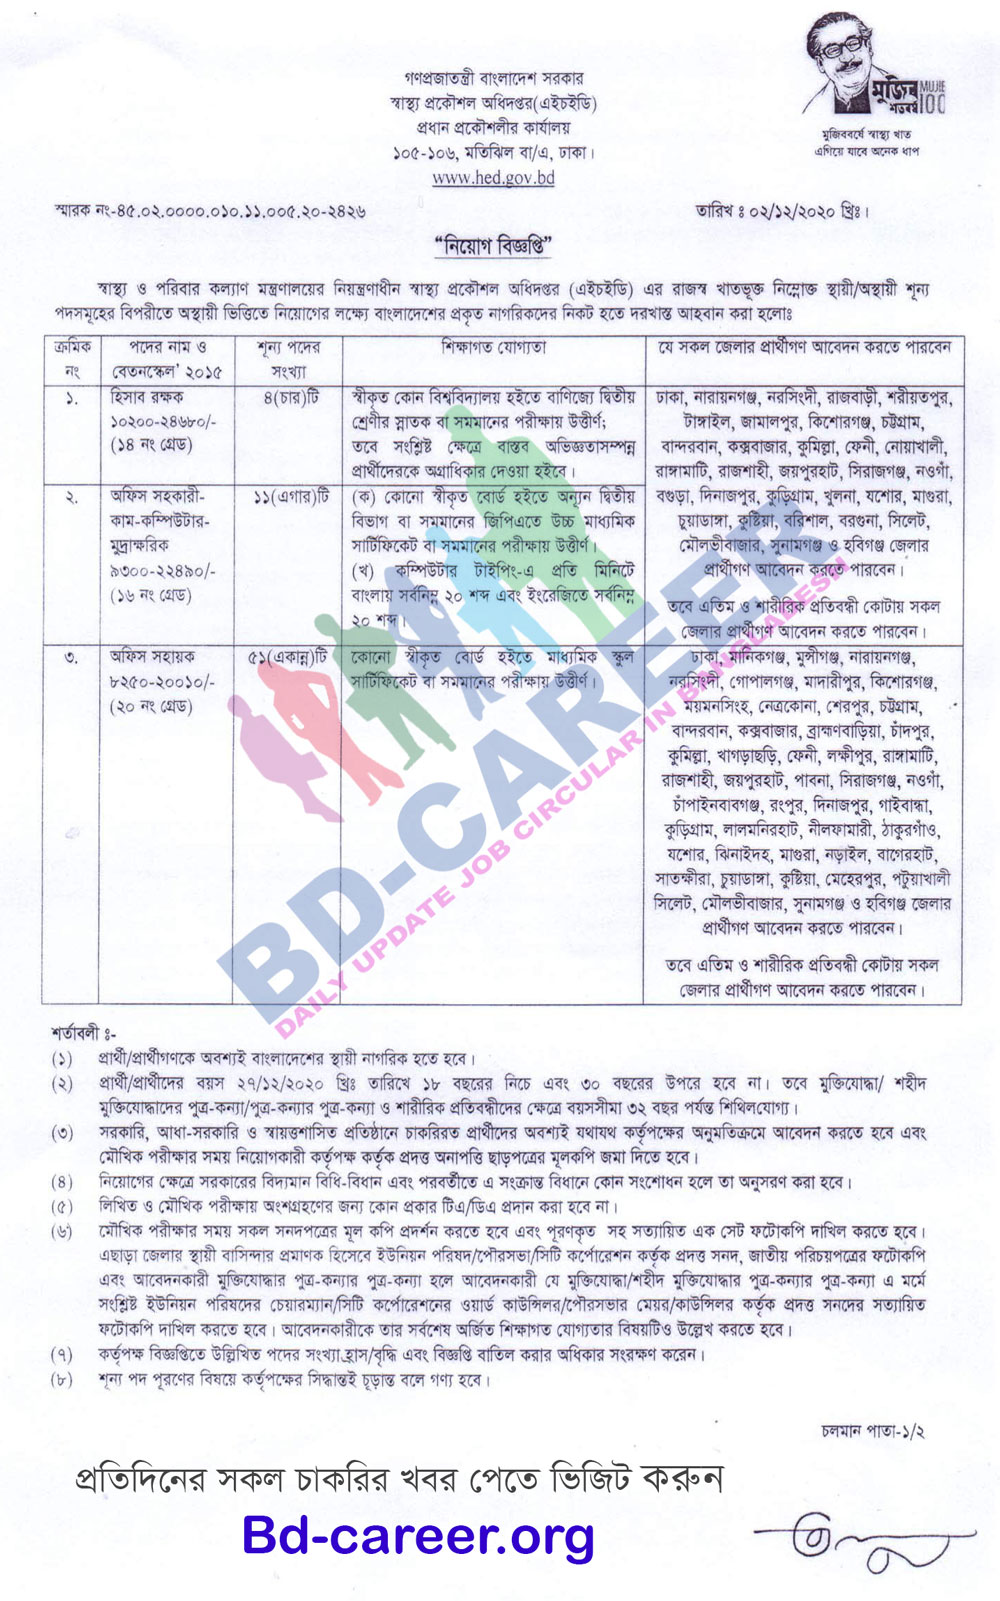 Health Engineering Department HED Job Circular 2020